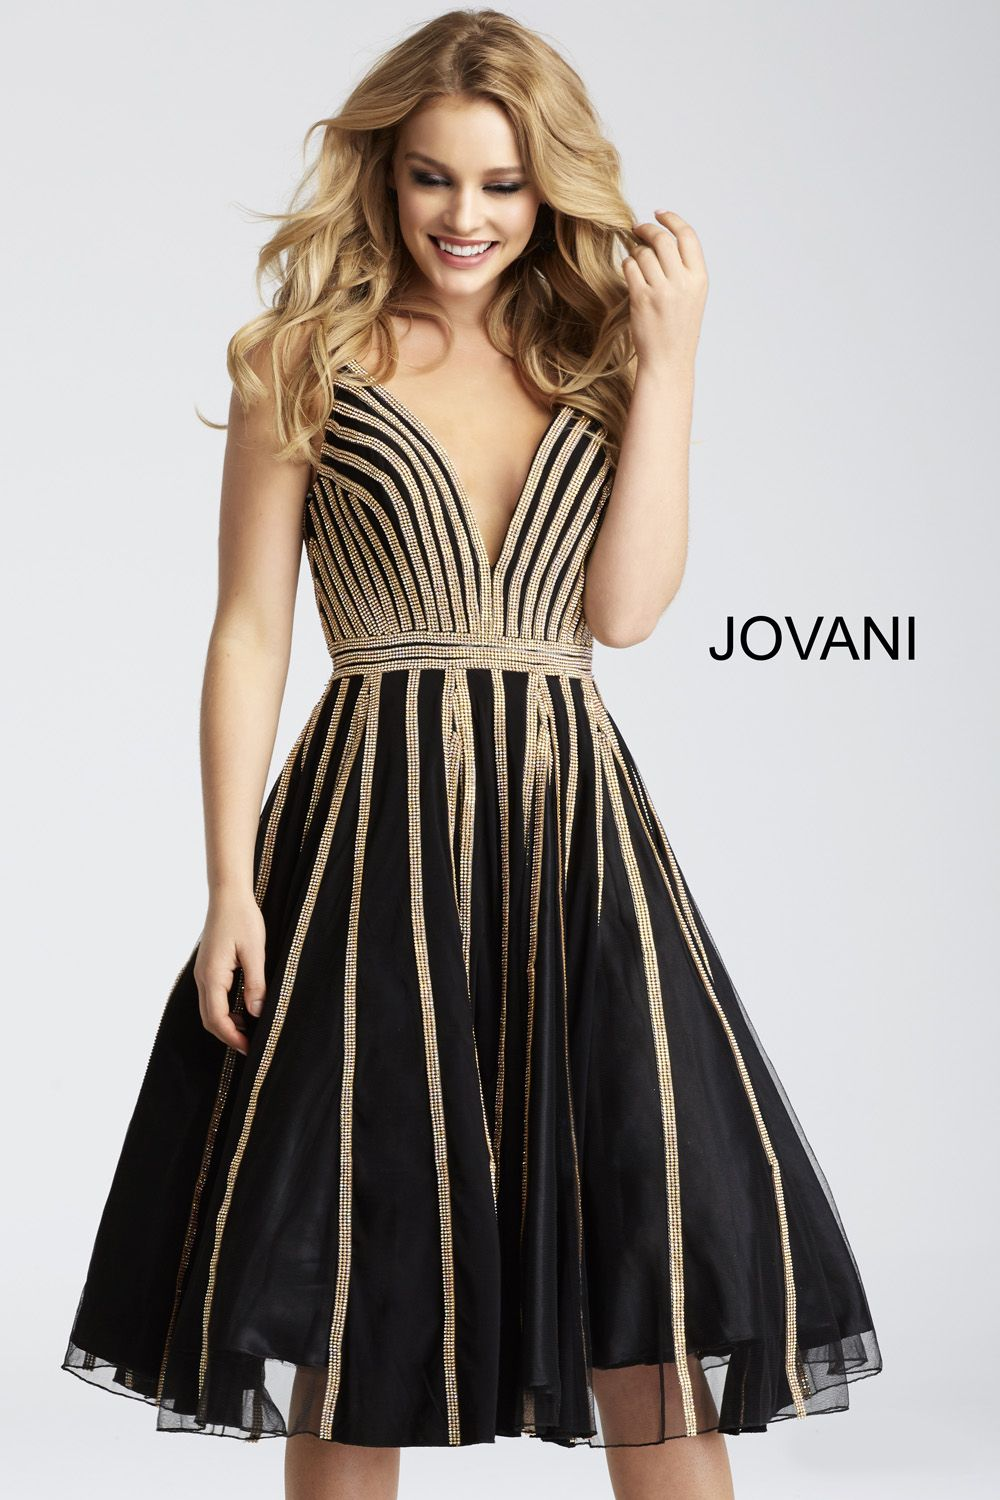 Jovani 56000 | Prom, Prom dress stores and Formal